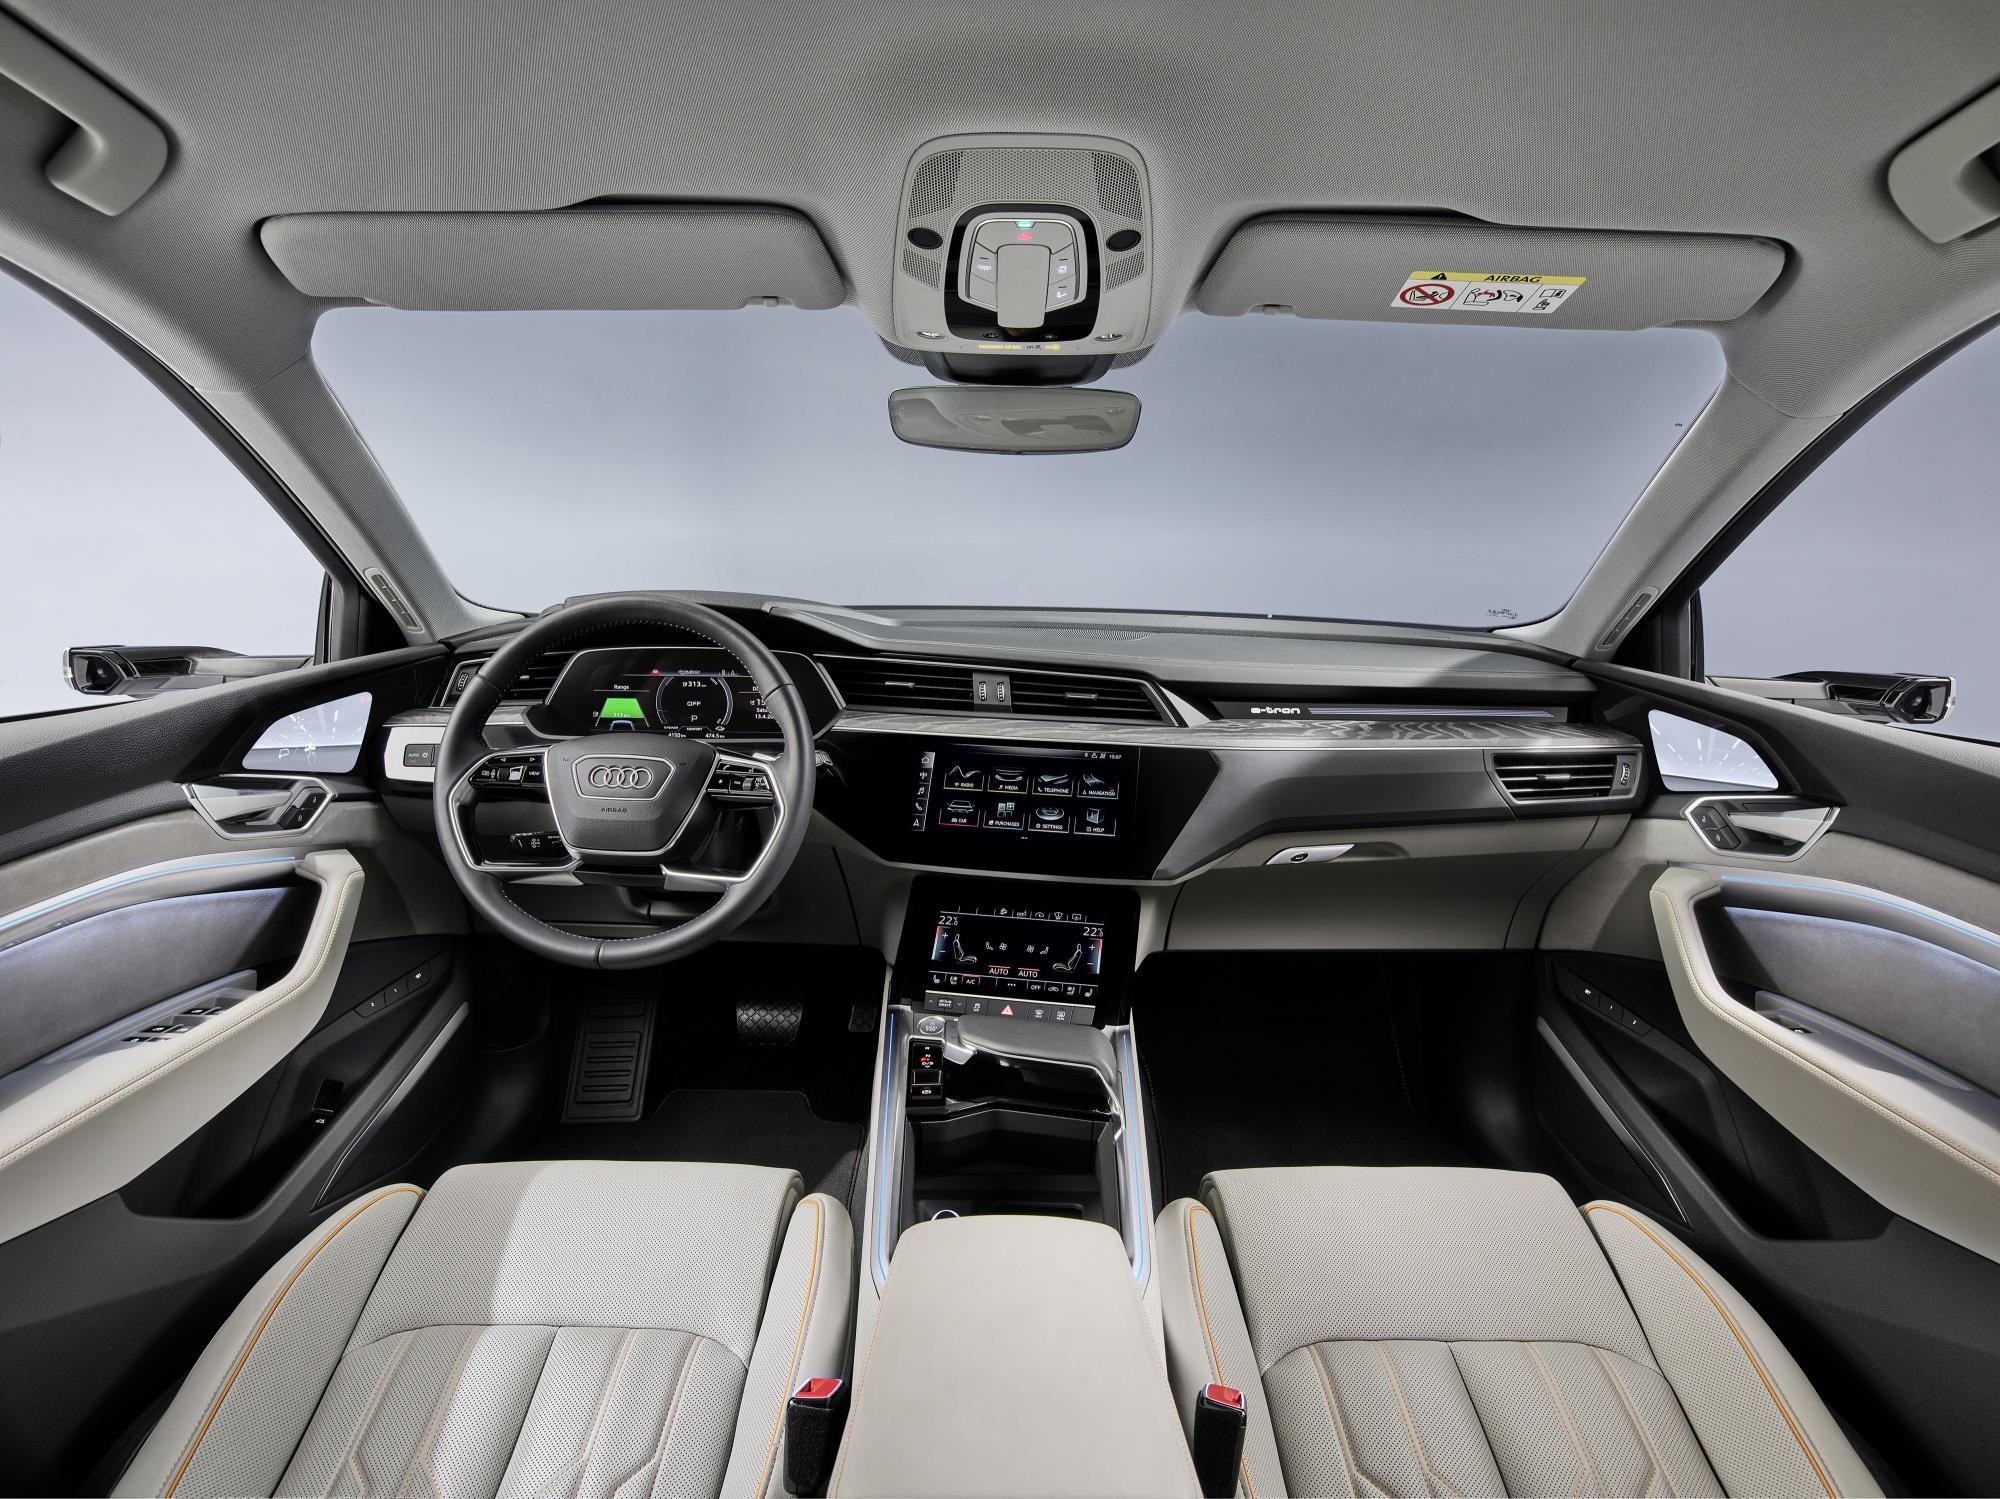 The interior of the car features dual touchscreens